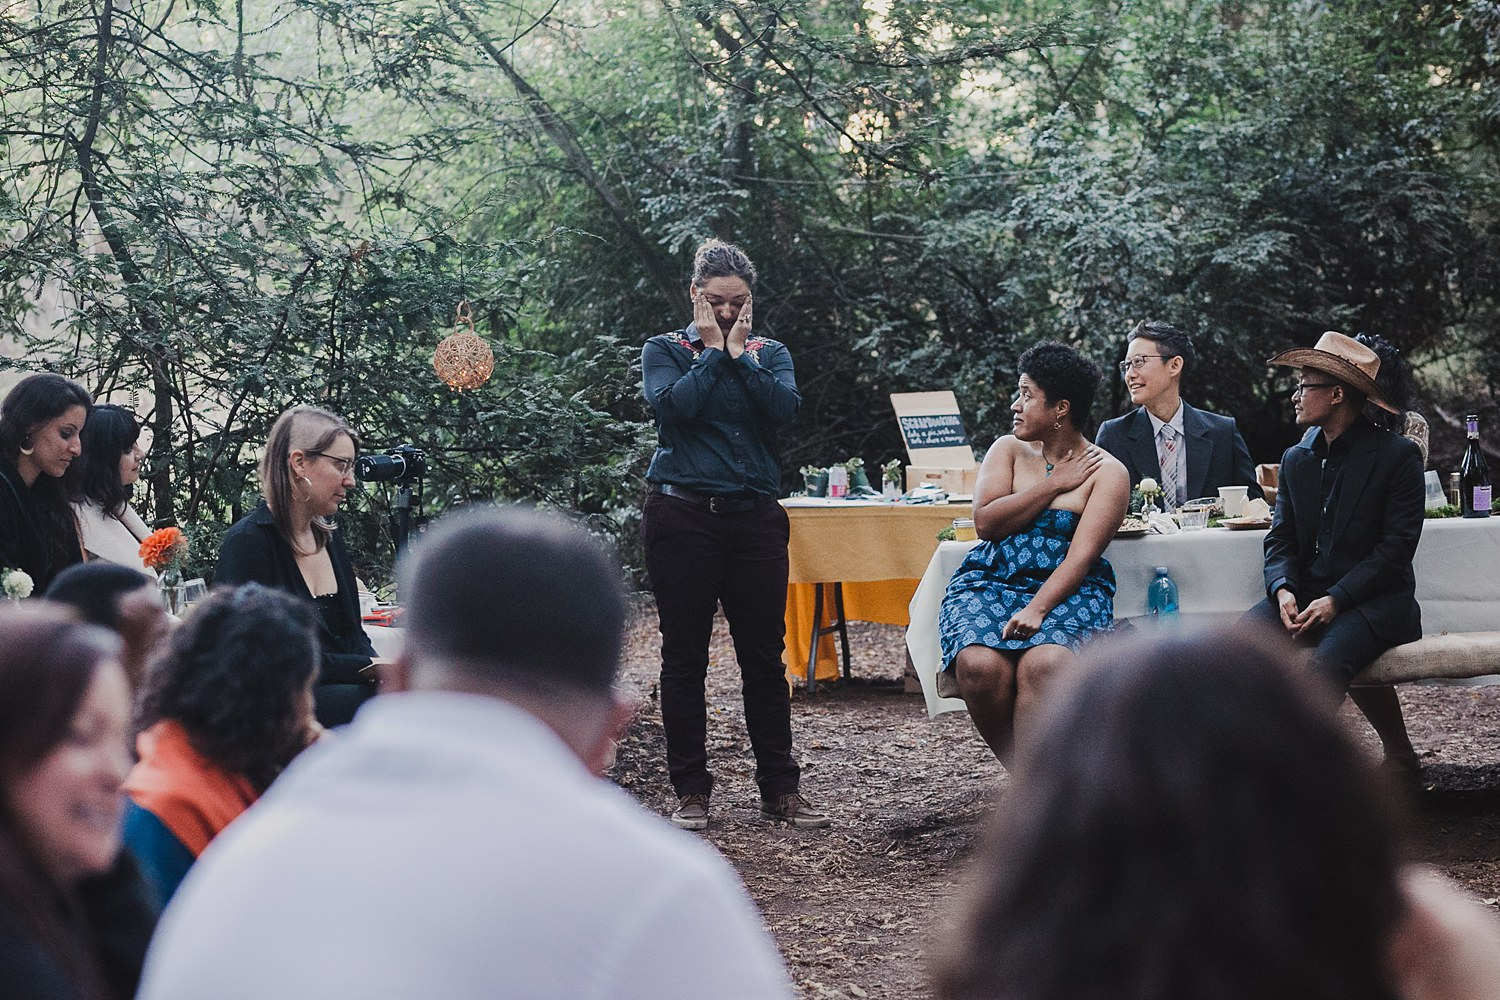 Emotional speech at an intimate wedding in Joaquin Miller Park in Oakland, CA.